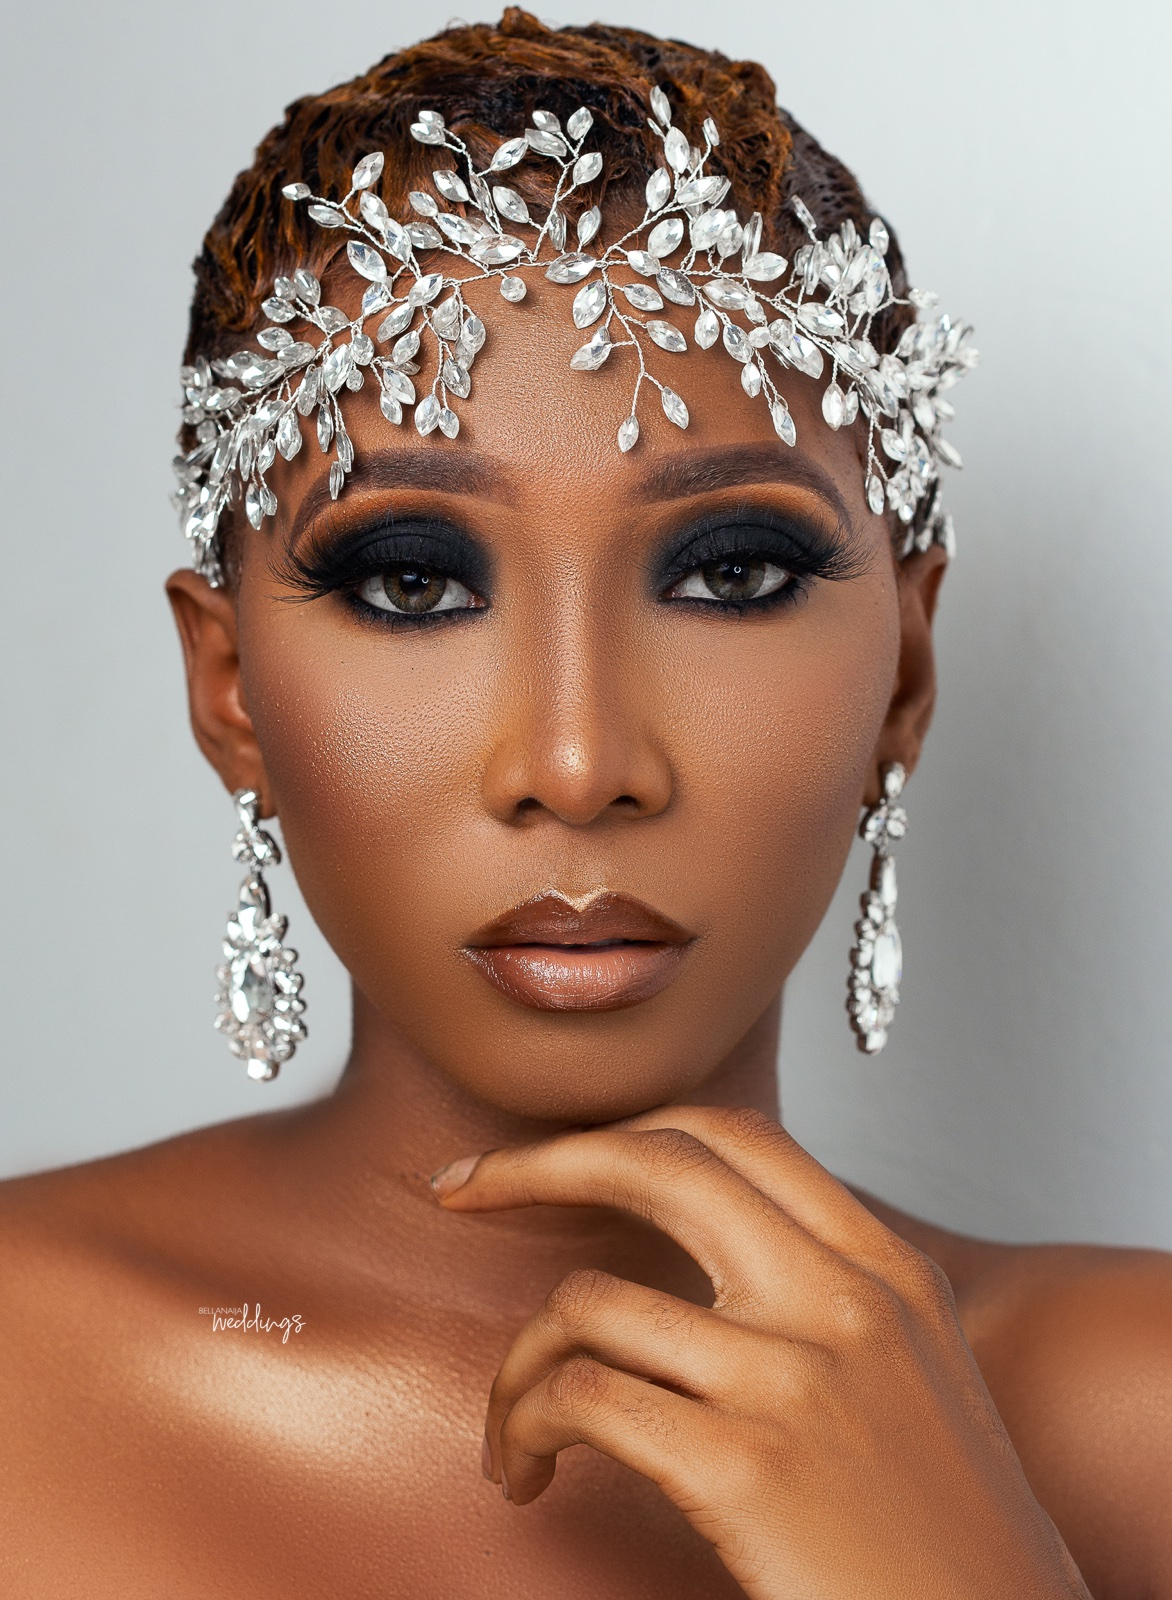 Short hair Brides! This Smokey Bridal Beauty is for YOU | BellaNaija Weddings